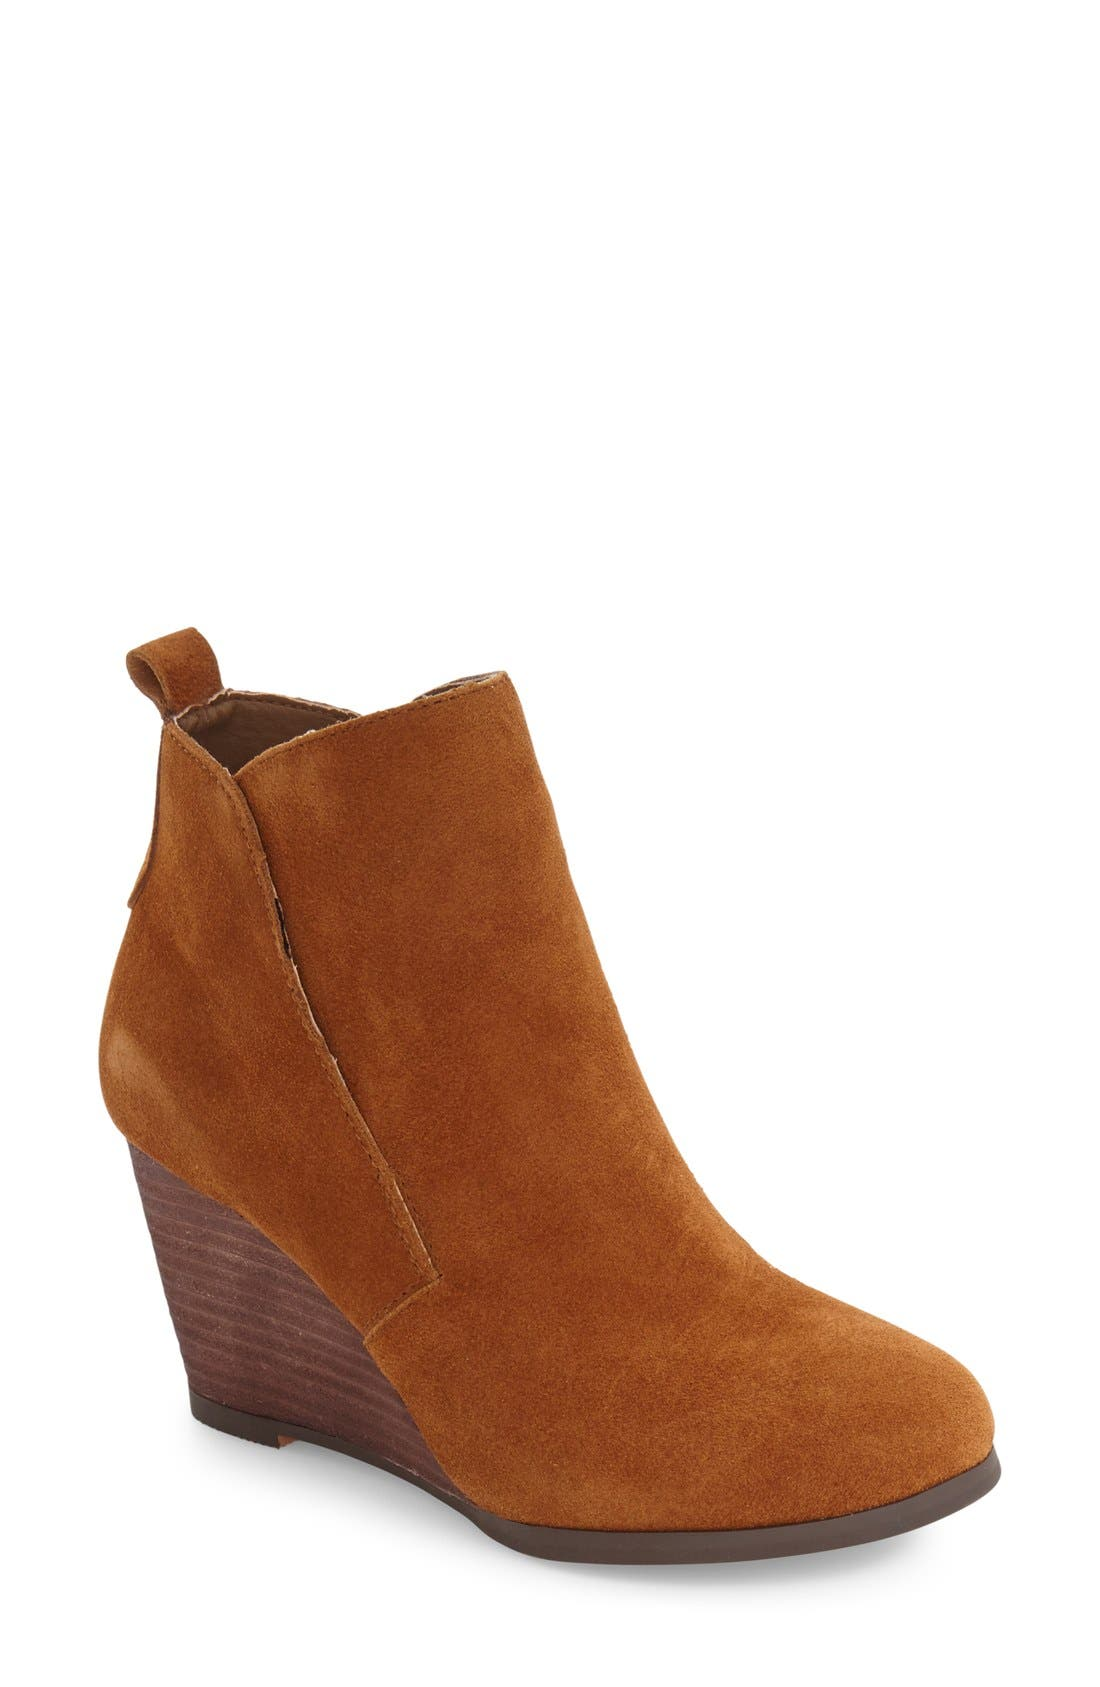 Alternate Image 1 Selected - Sole Society Brigitte Wedge Bootie (Women)